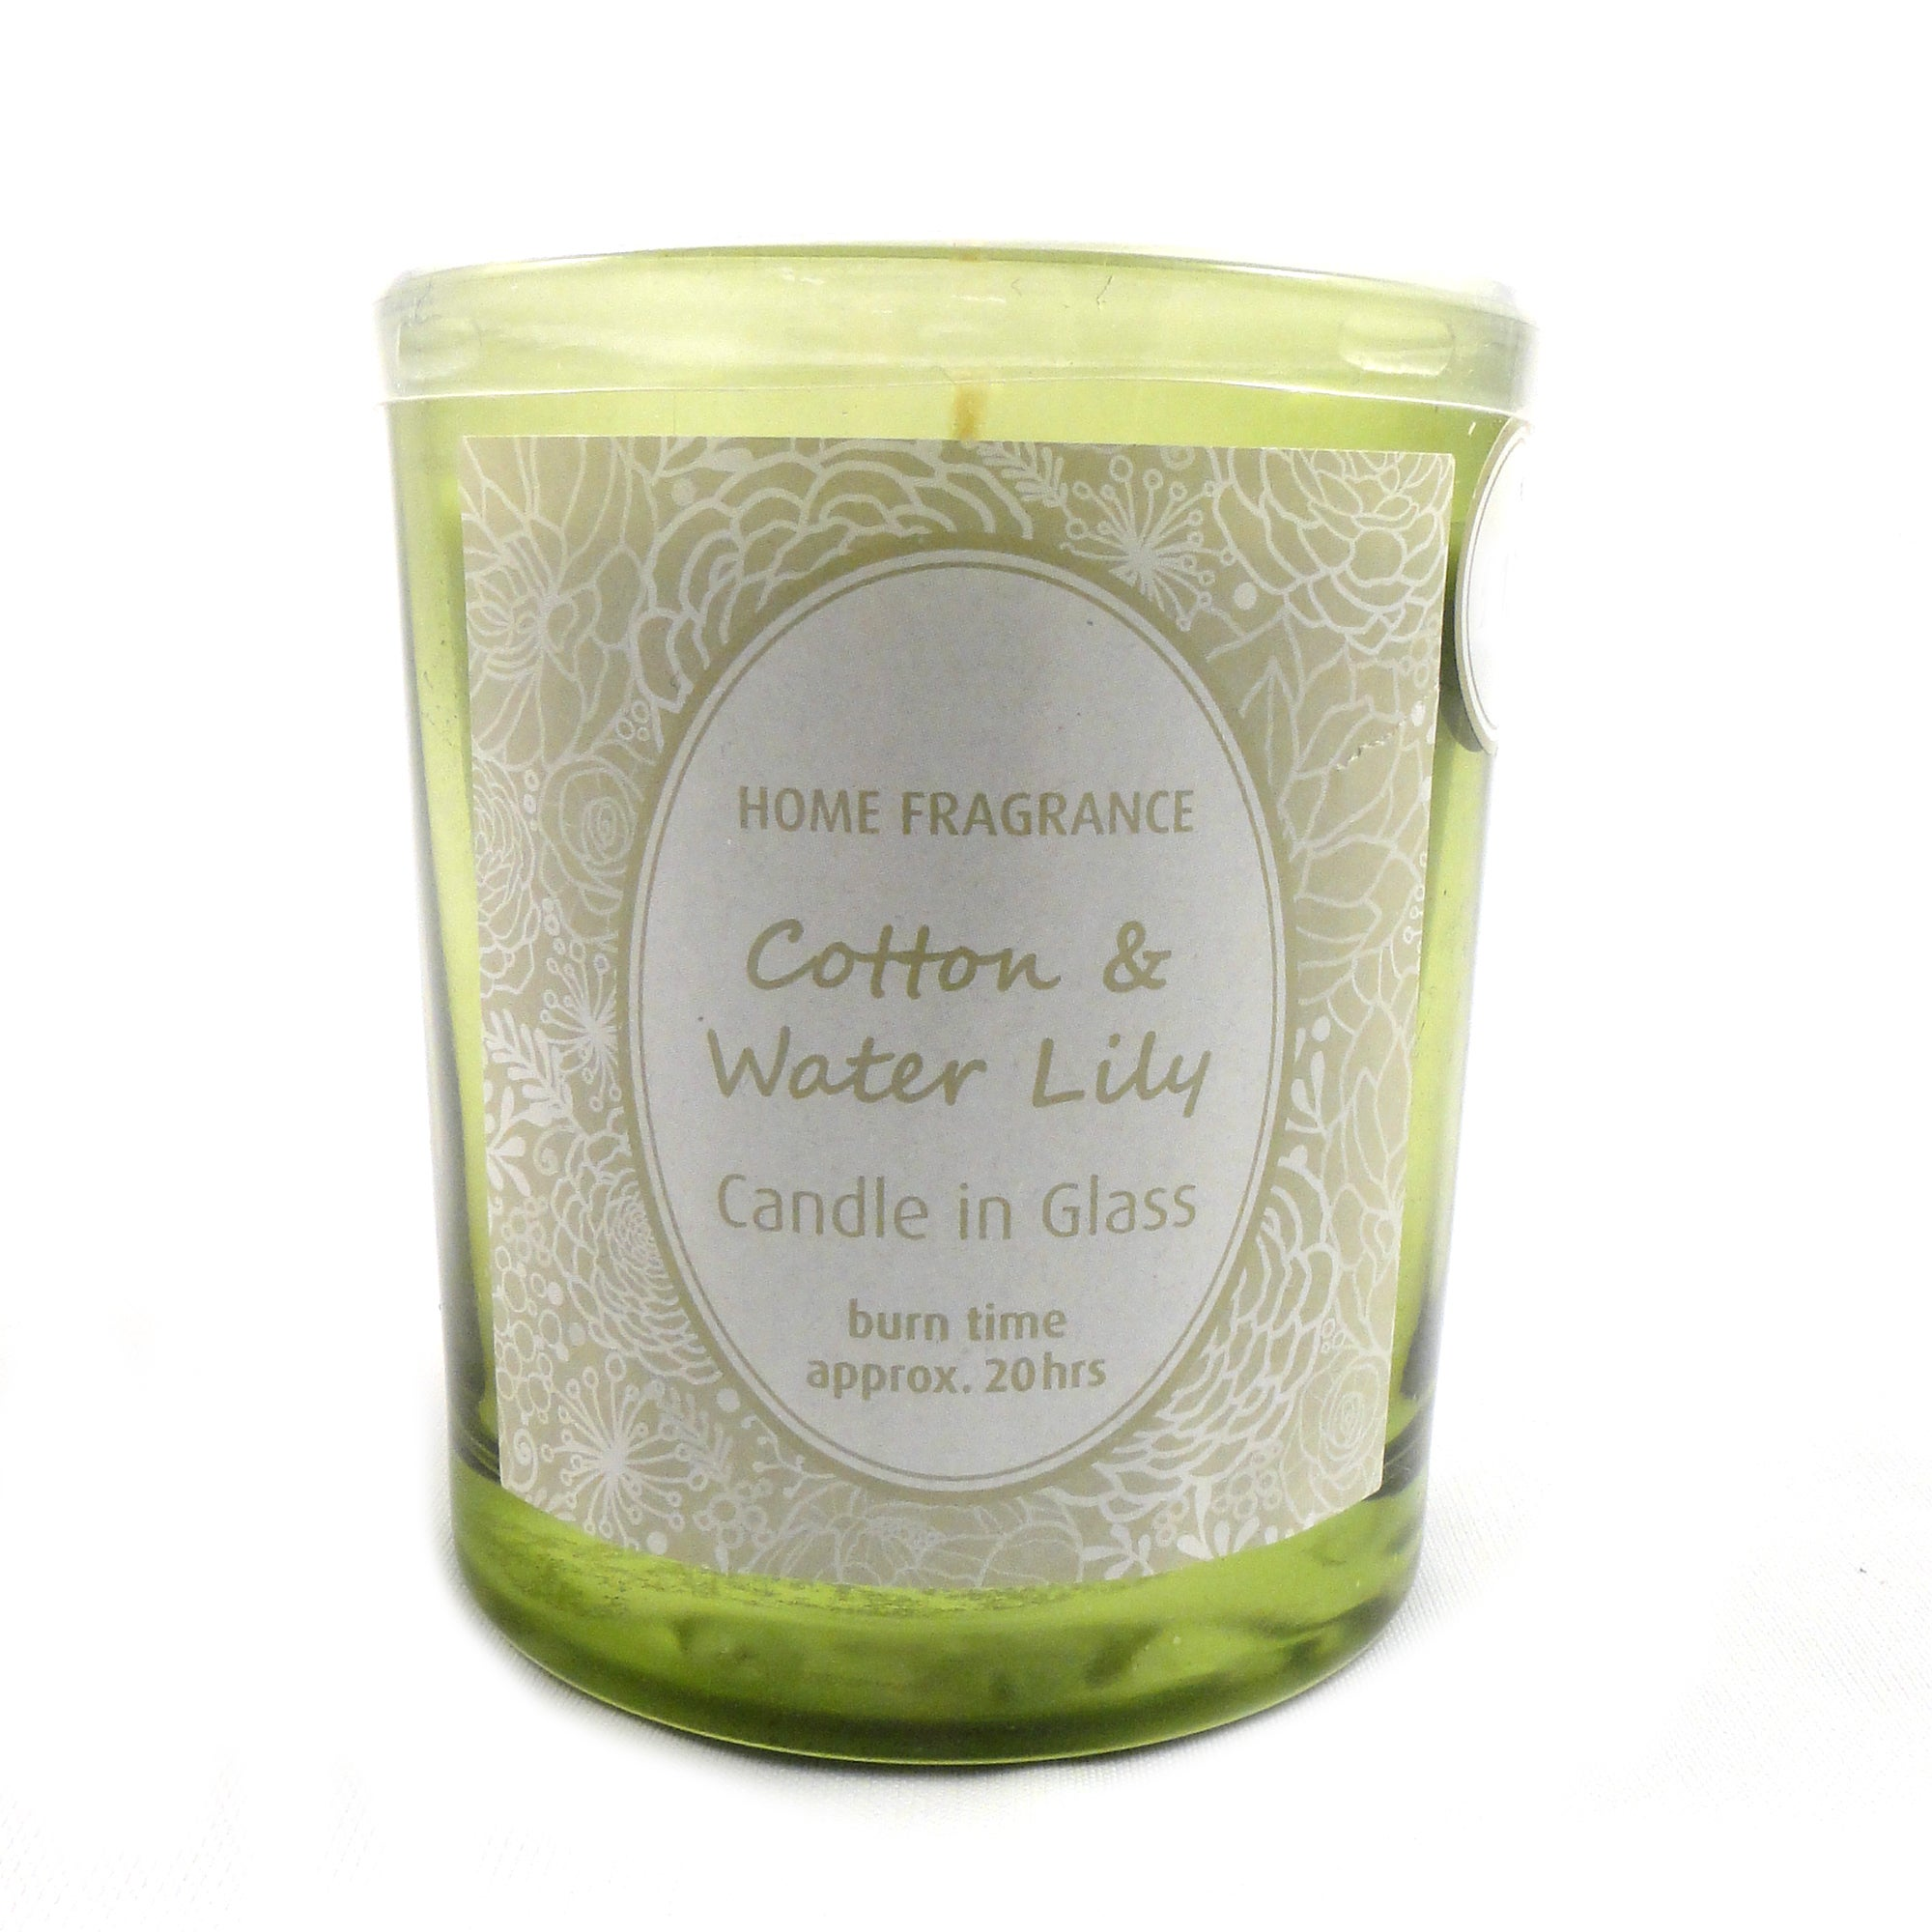 Home Fragrance Cotton and Water Lily Glass Candle